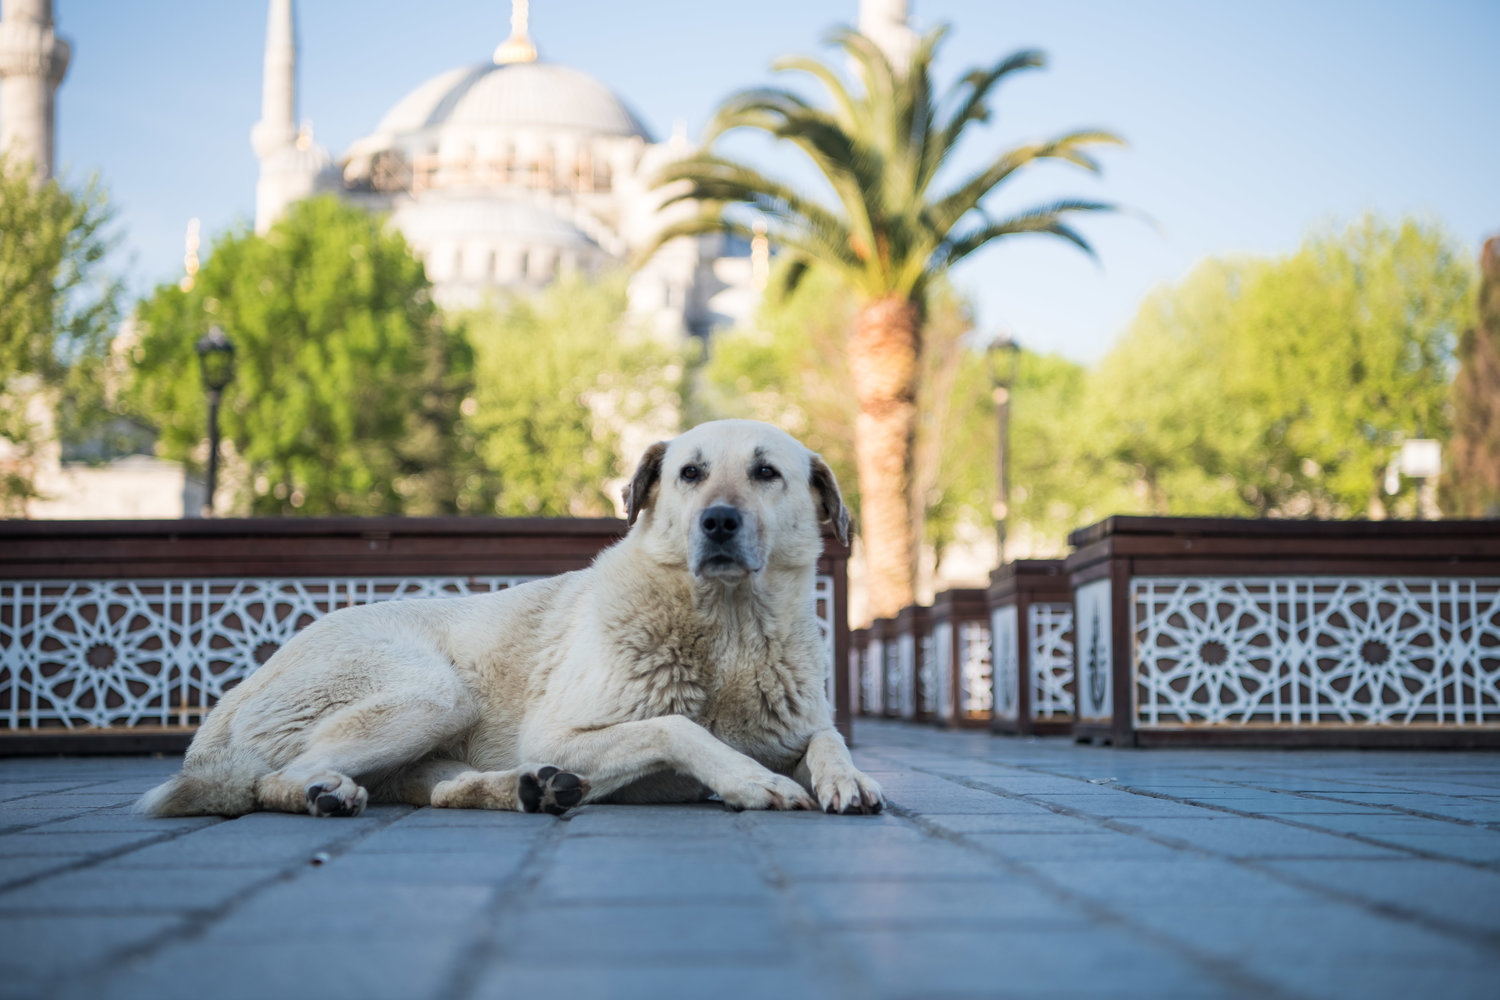 Istanbul, Turkey - One City, Two Continents, A World of Culture